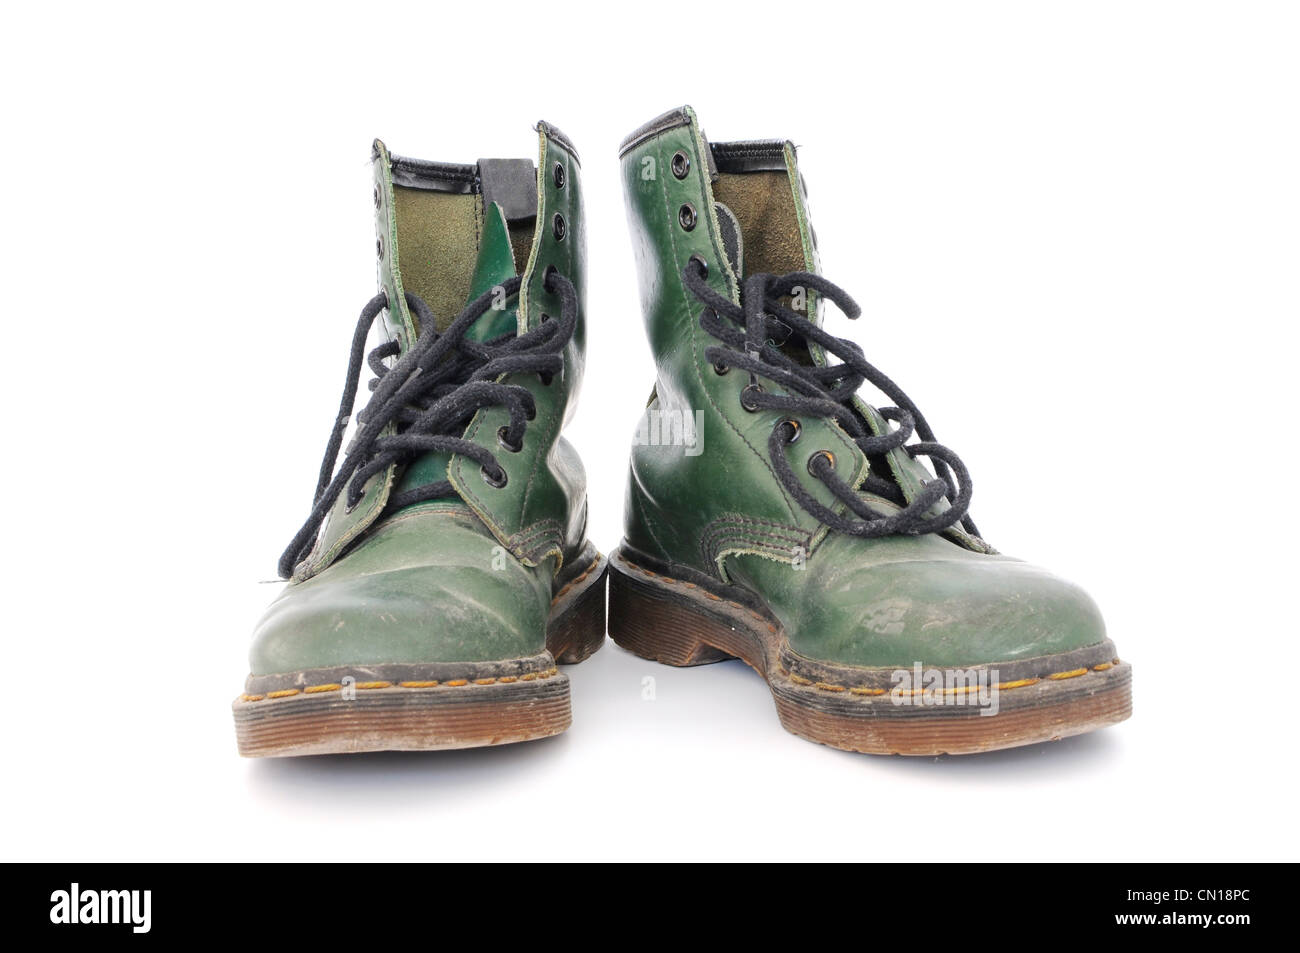 Pair of dirty green worn out shoes - Stock Image